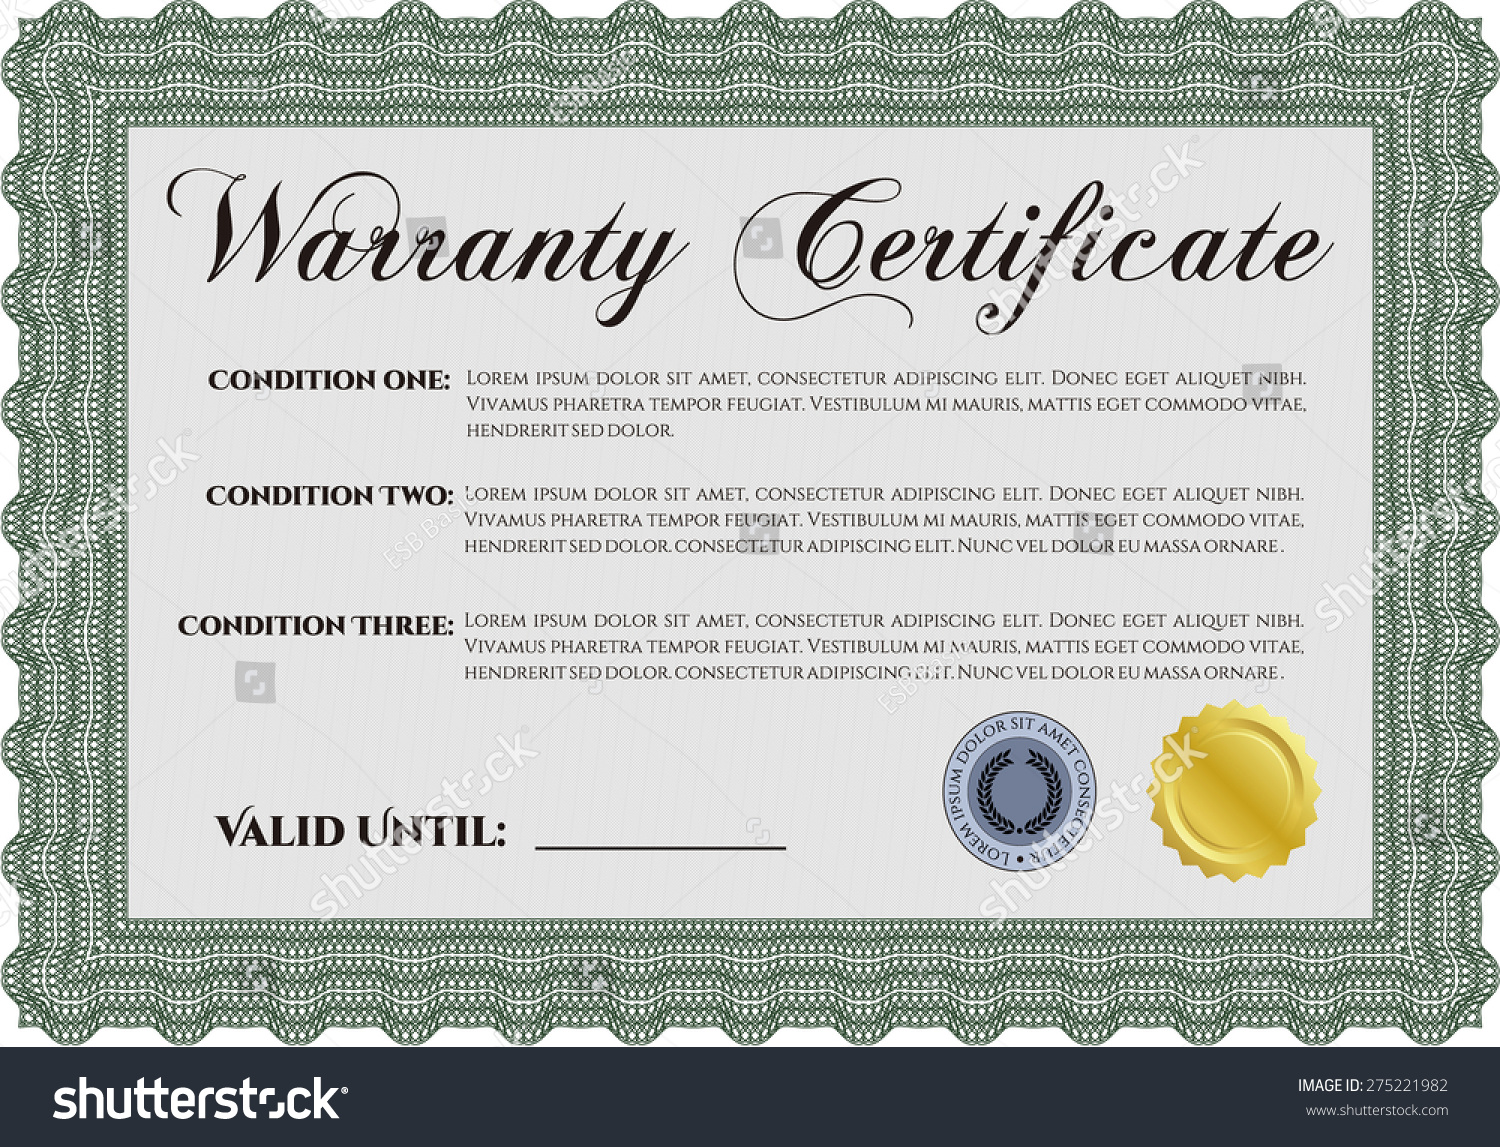 Sample Warranty Certificate Complex Border Design Stock Vector ...